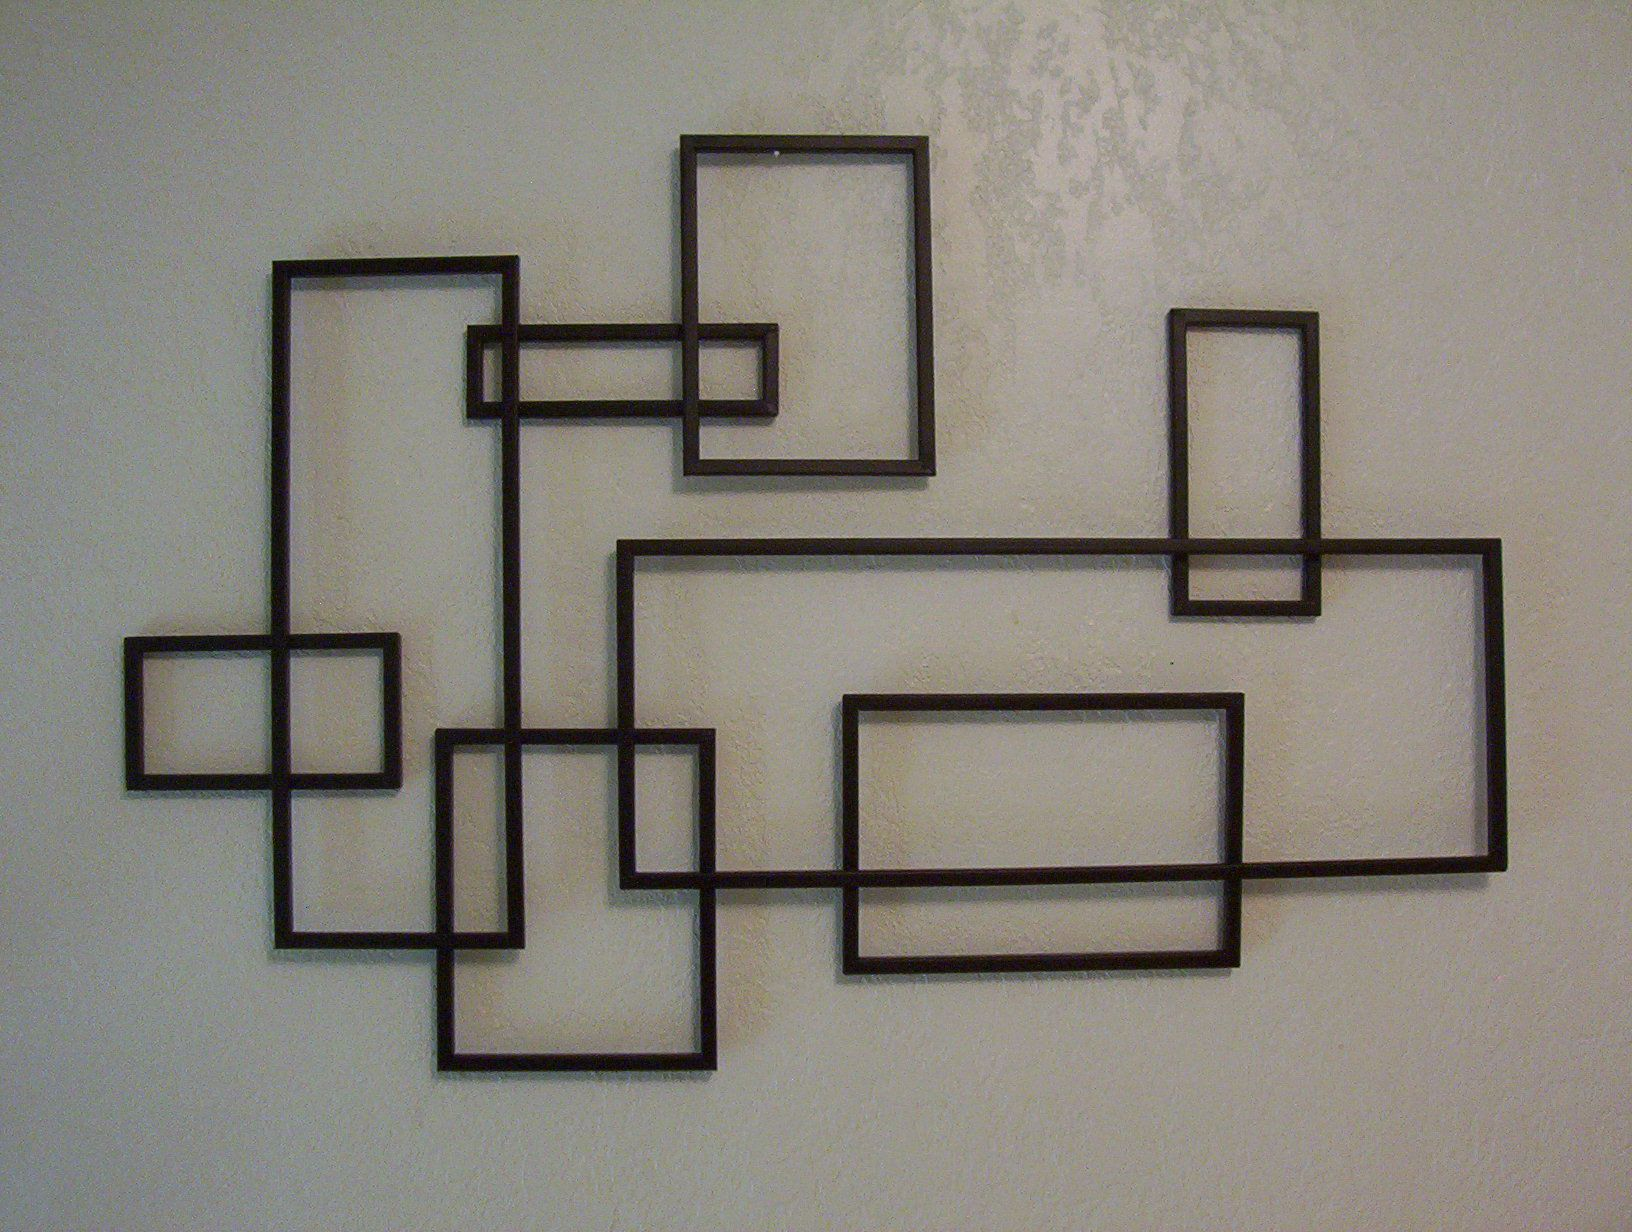 mid century modern de stijl style geometric metal wall sculpture de stijl mid century. Black Bedroom Furniture Sets. Home Design Ideas